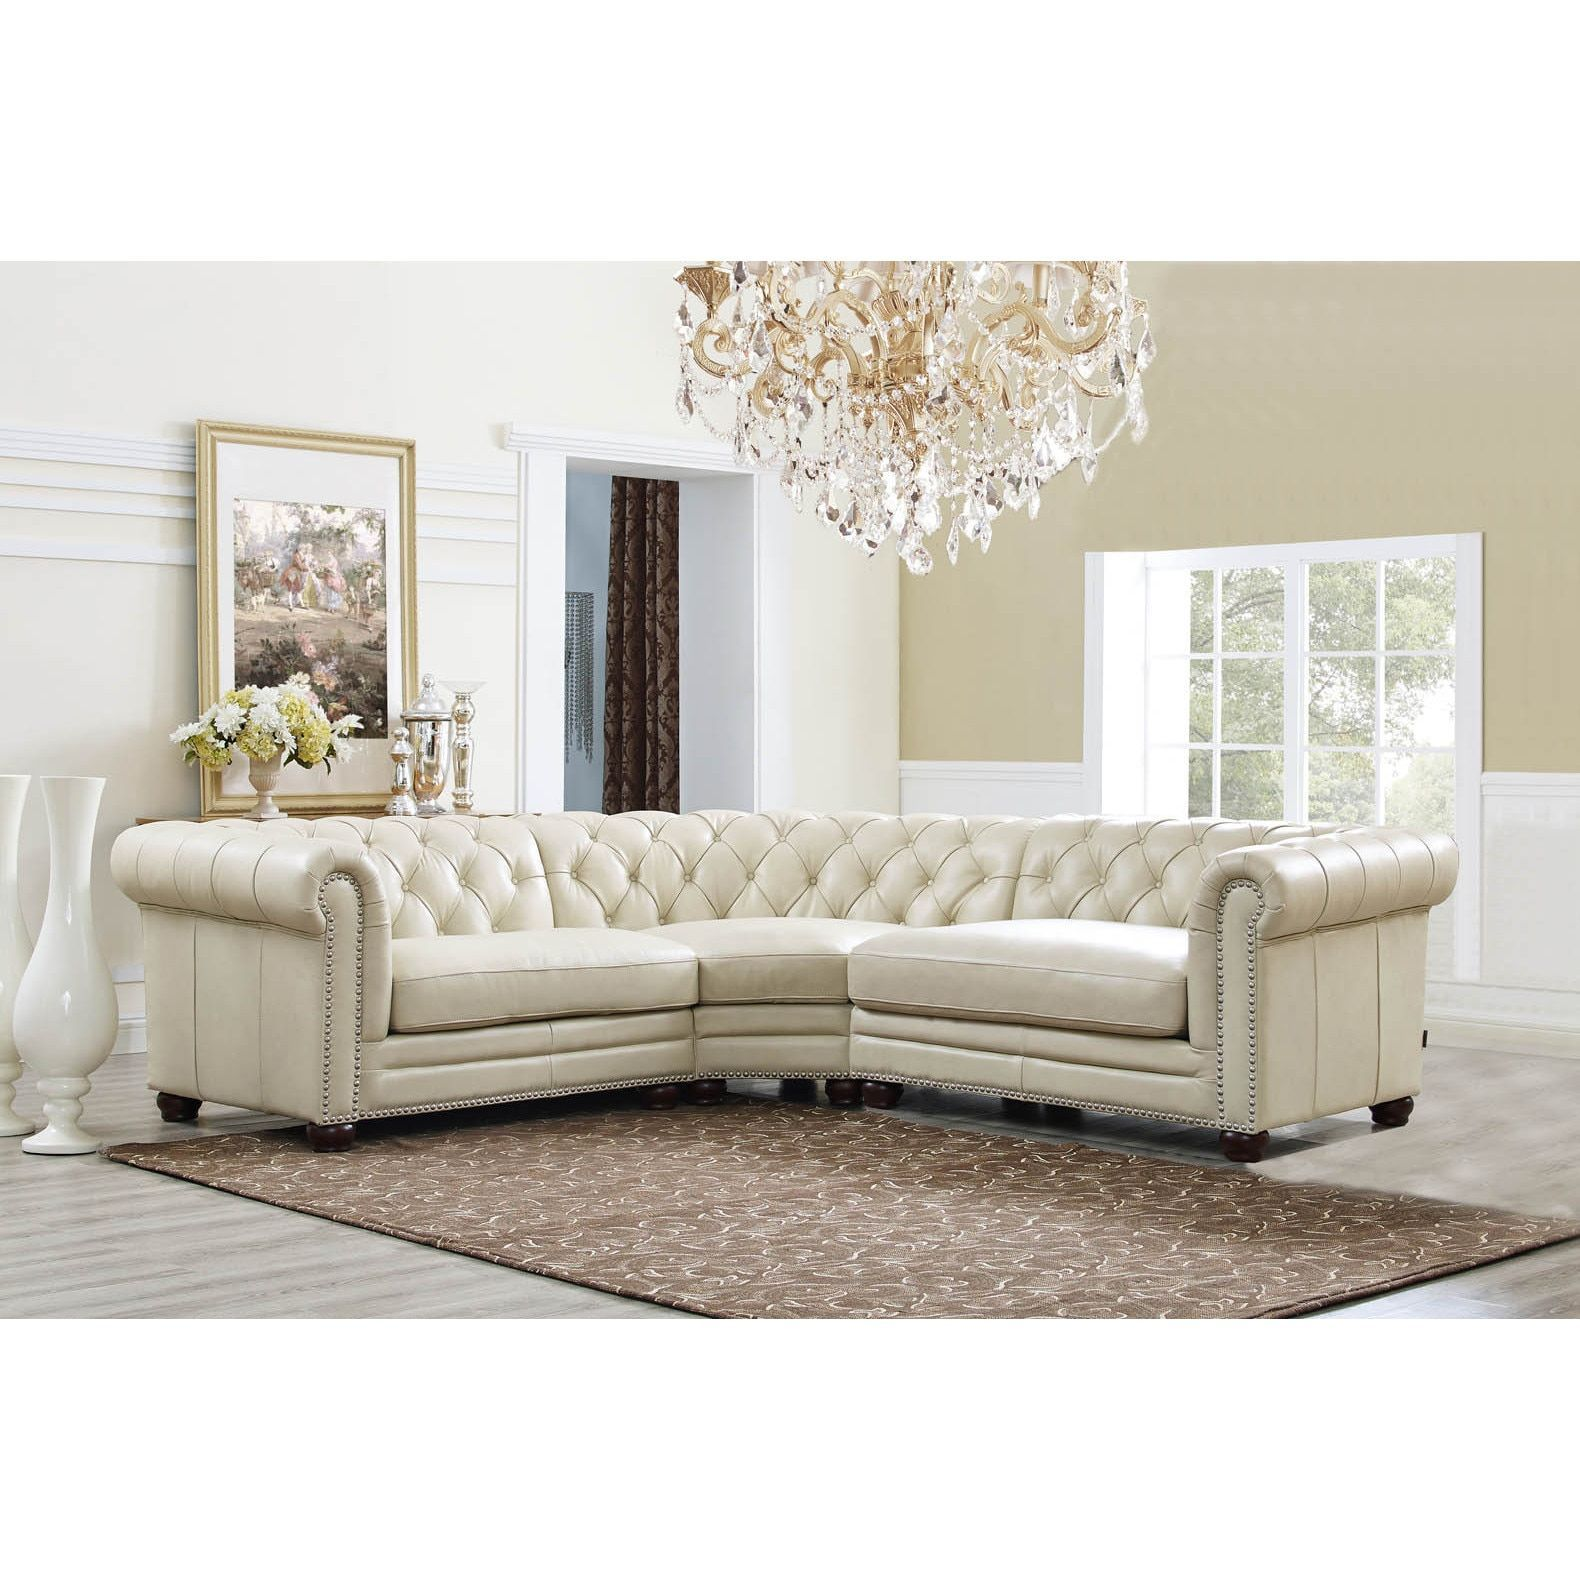 Hydeline By Amax Nicholson Top Grain Leather Button Tufted Nailhead Trim  Sectional Sofa, 3 Pieces (Color), Ivory Cream